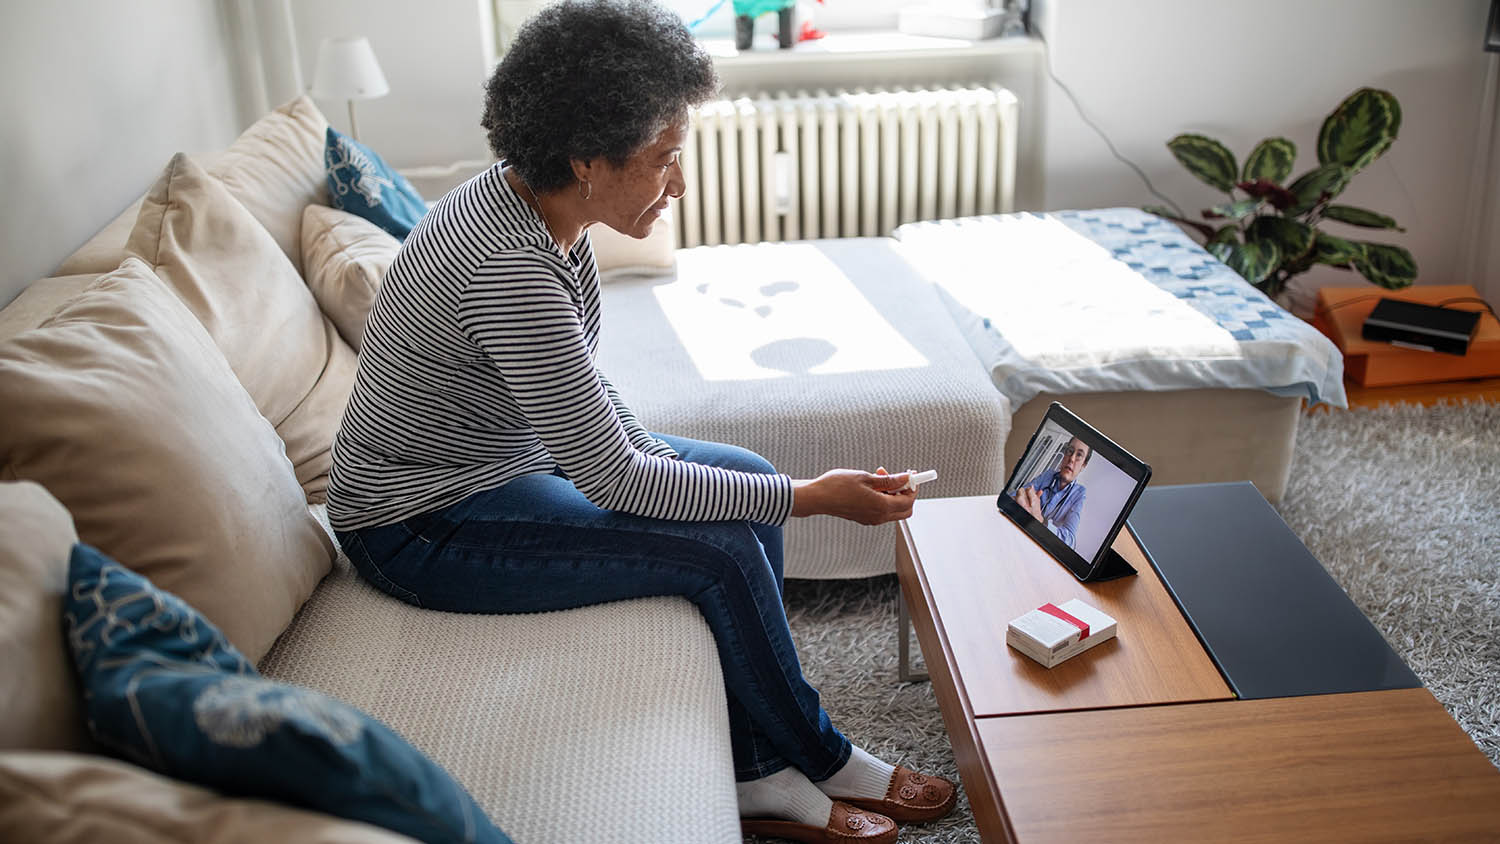 Doctors Share 6 Tips for Getting the Most From Telehealth Appointments